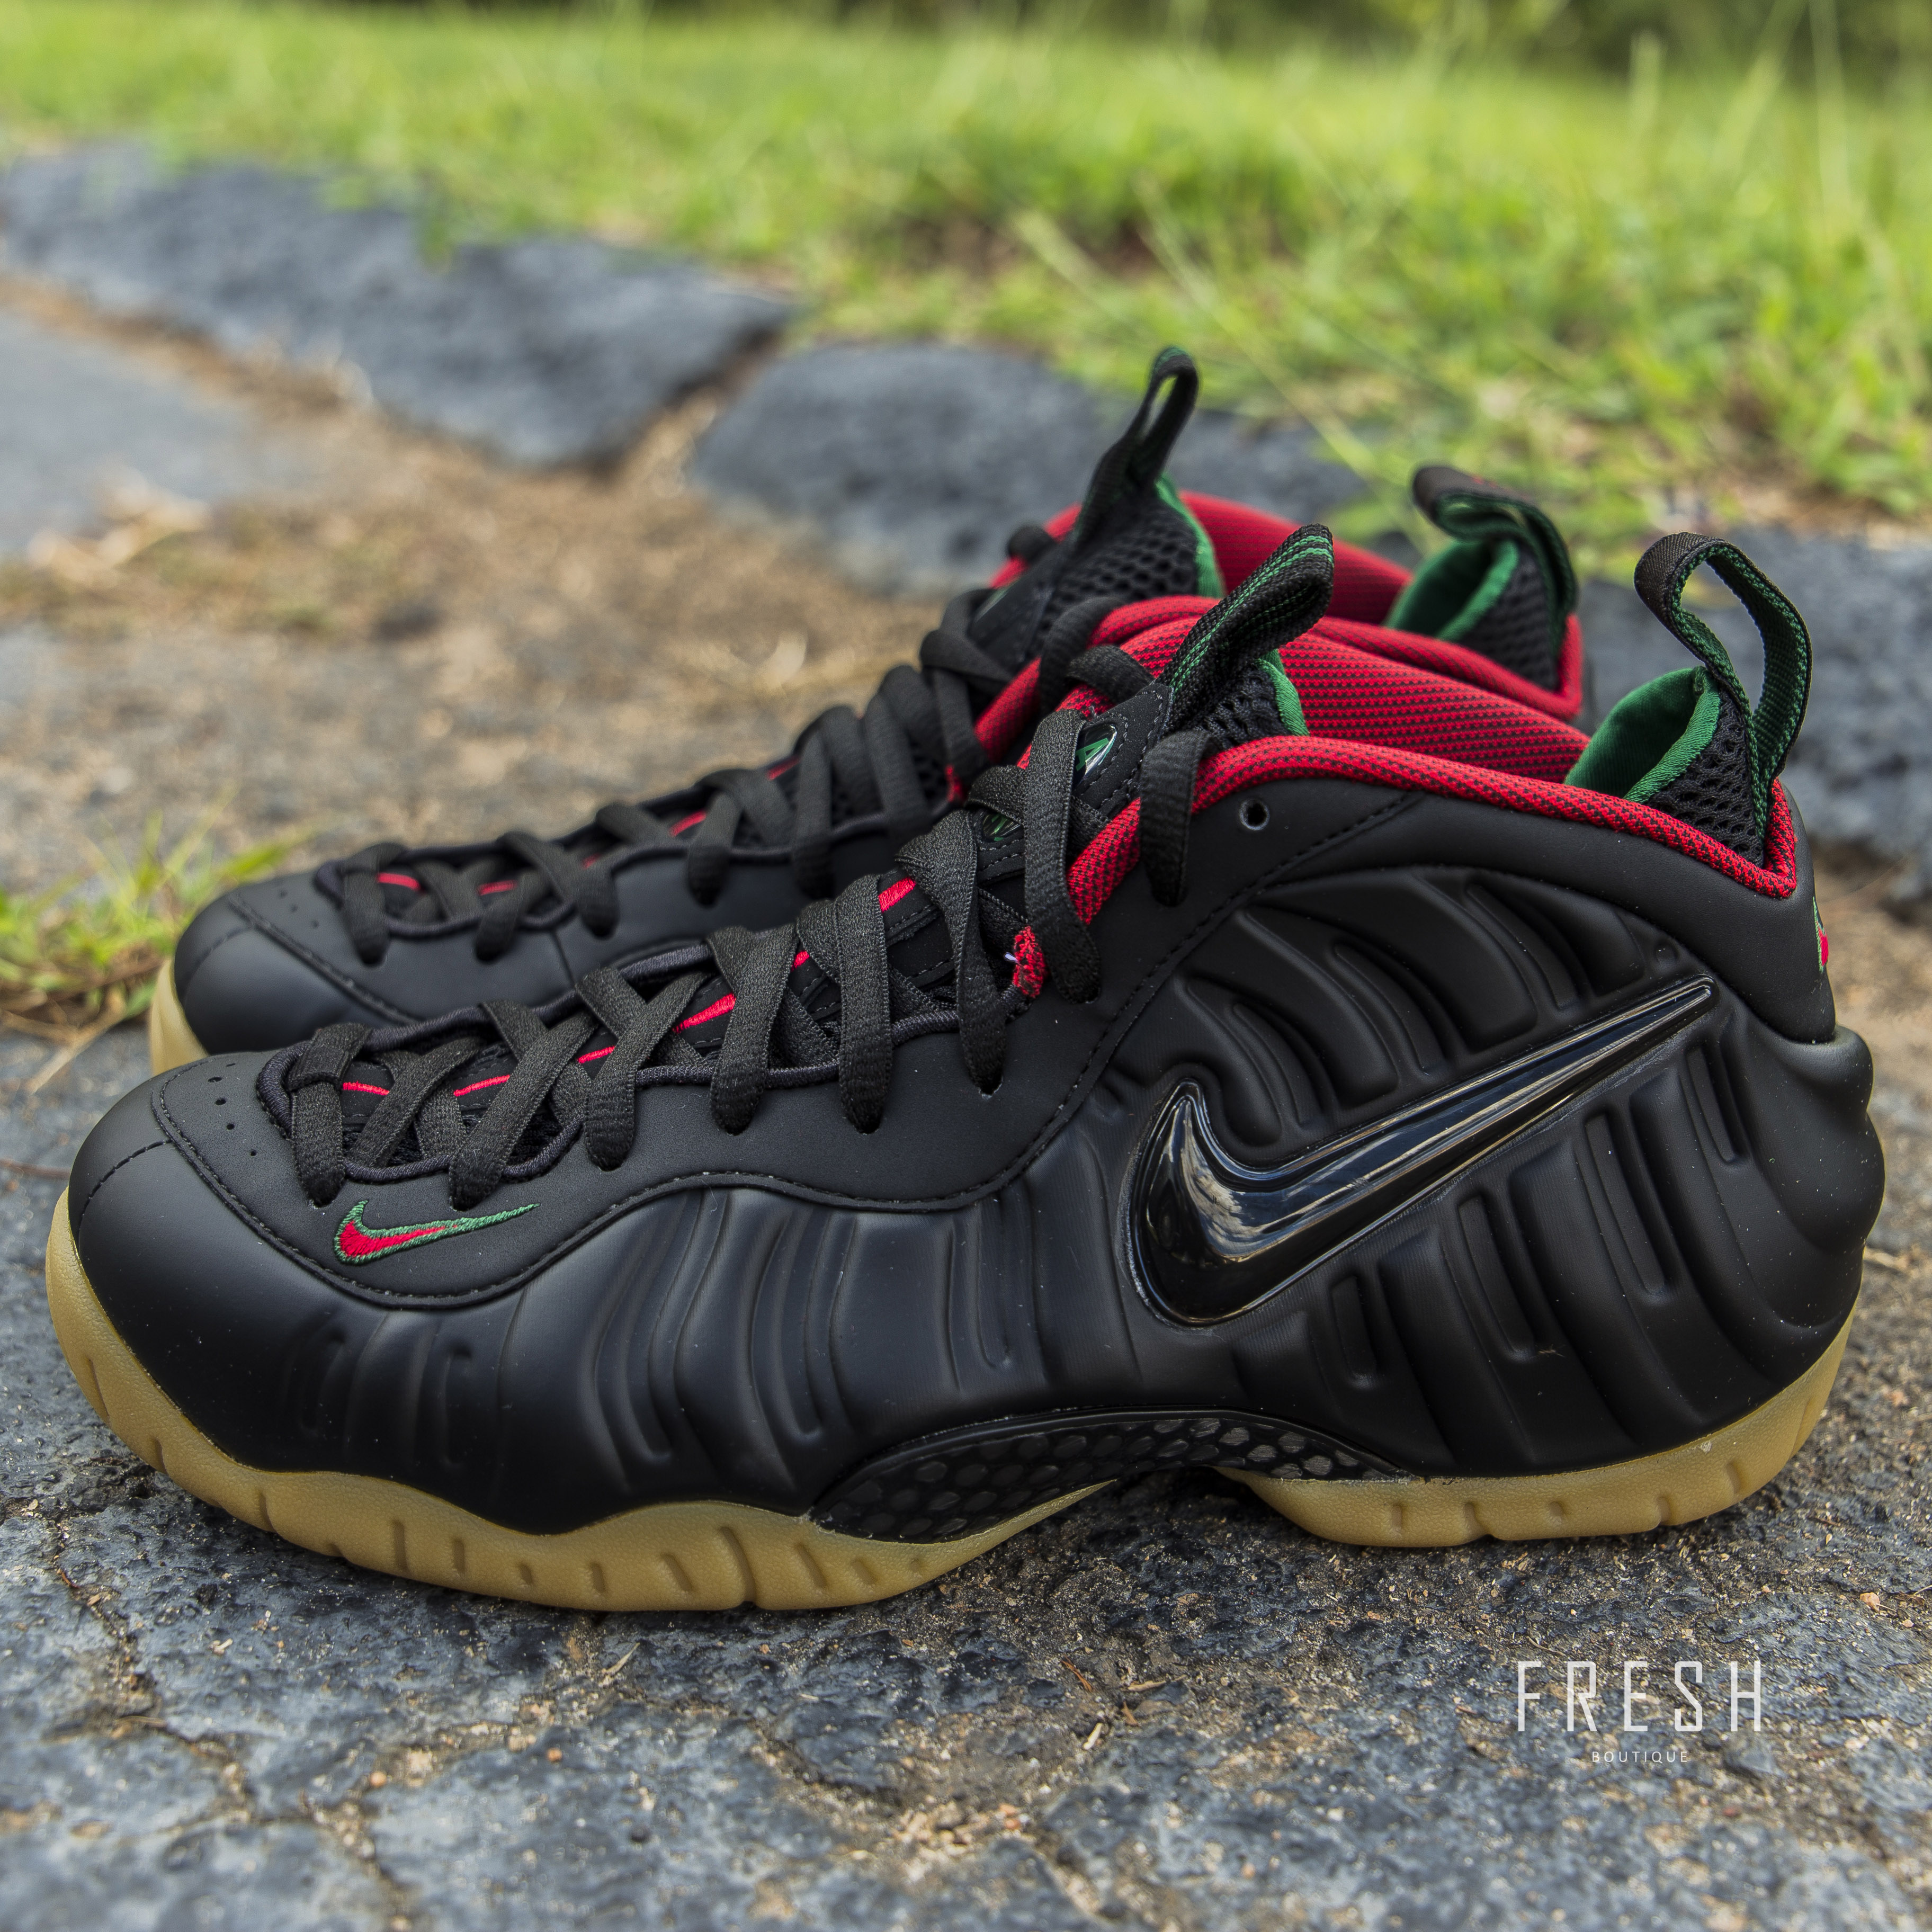 huge selection of ad65c de58a ... Air Foamposite Pro – Black/Gym Red/Green/Metallic Gold. Category:  Uncategorized ...